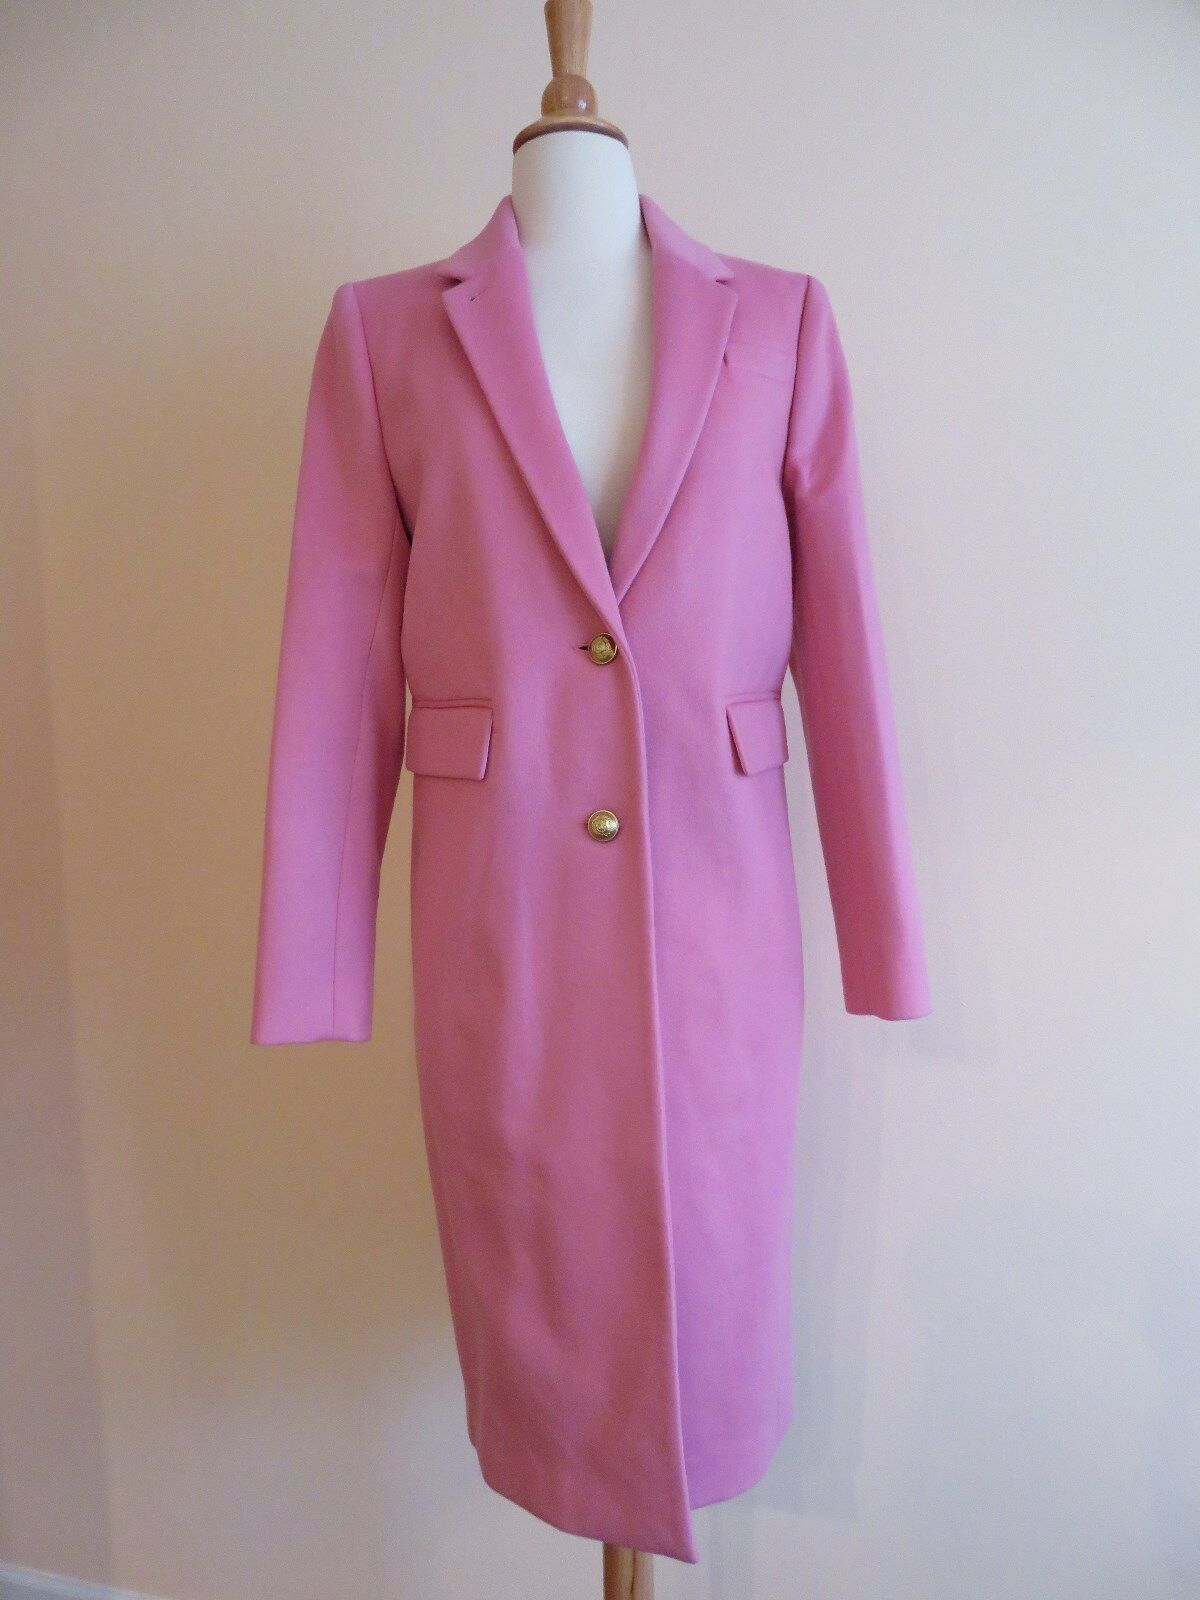 NEW J.CREW COLLECTION OLIVIA TOPCOAT WITH GROSGRAIN RIBBON, F7077, SZ 4 PINK